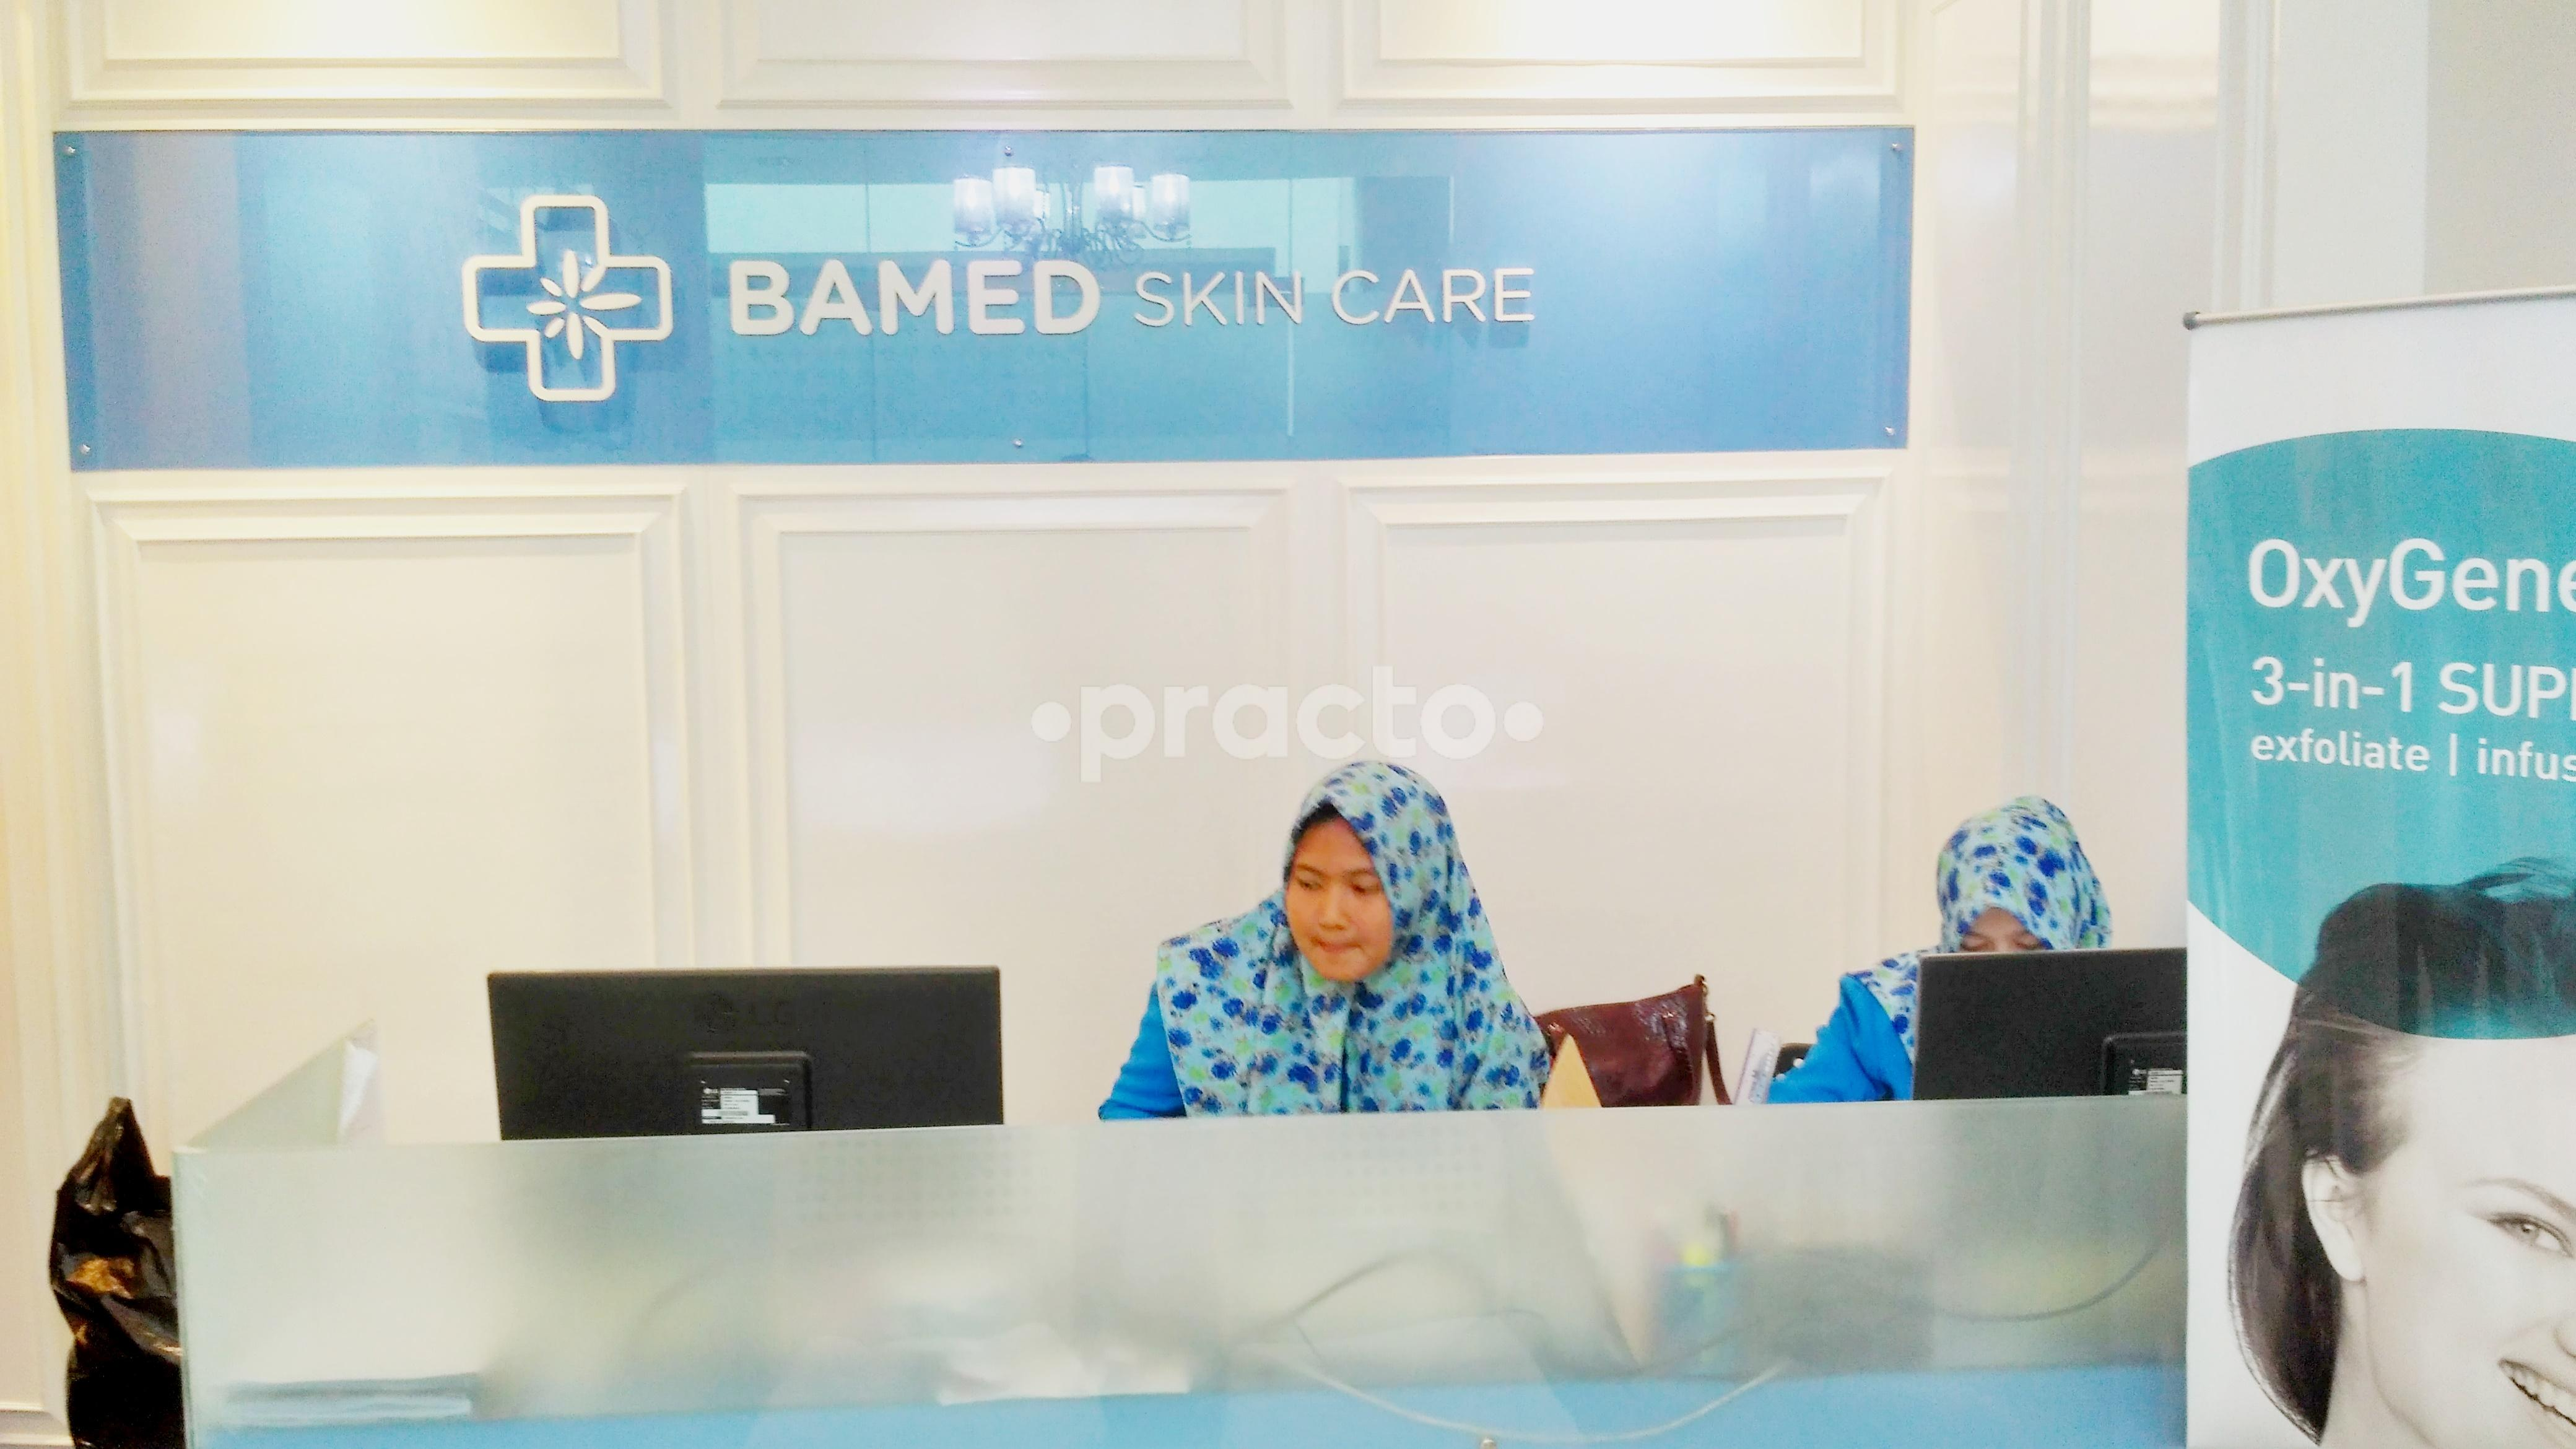 Bamed Skin Care